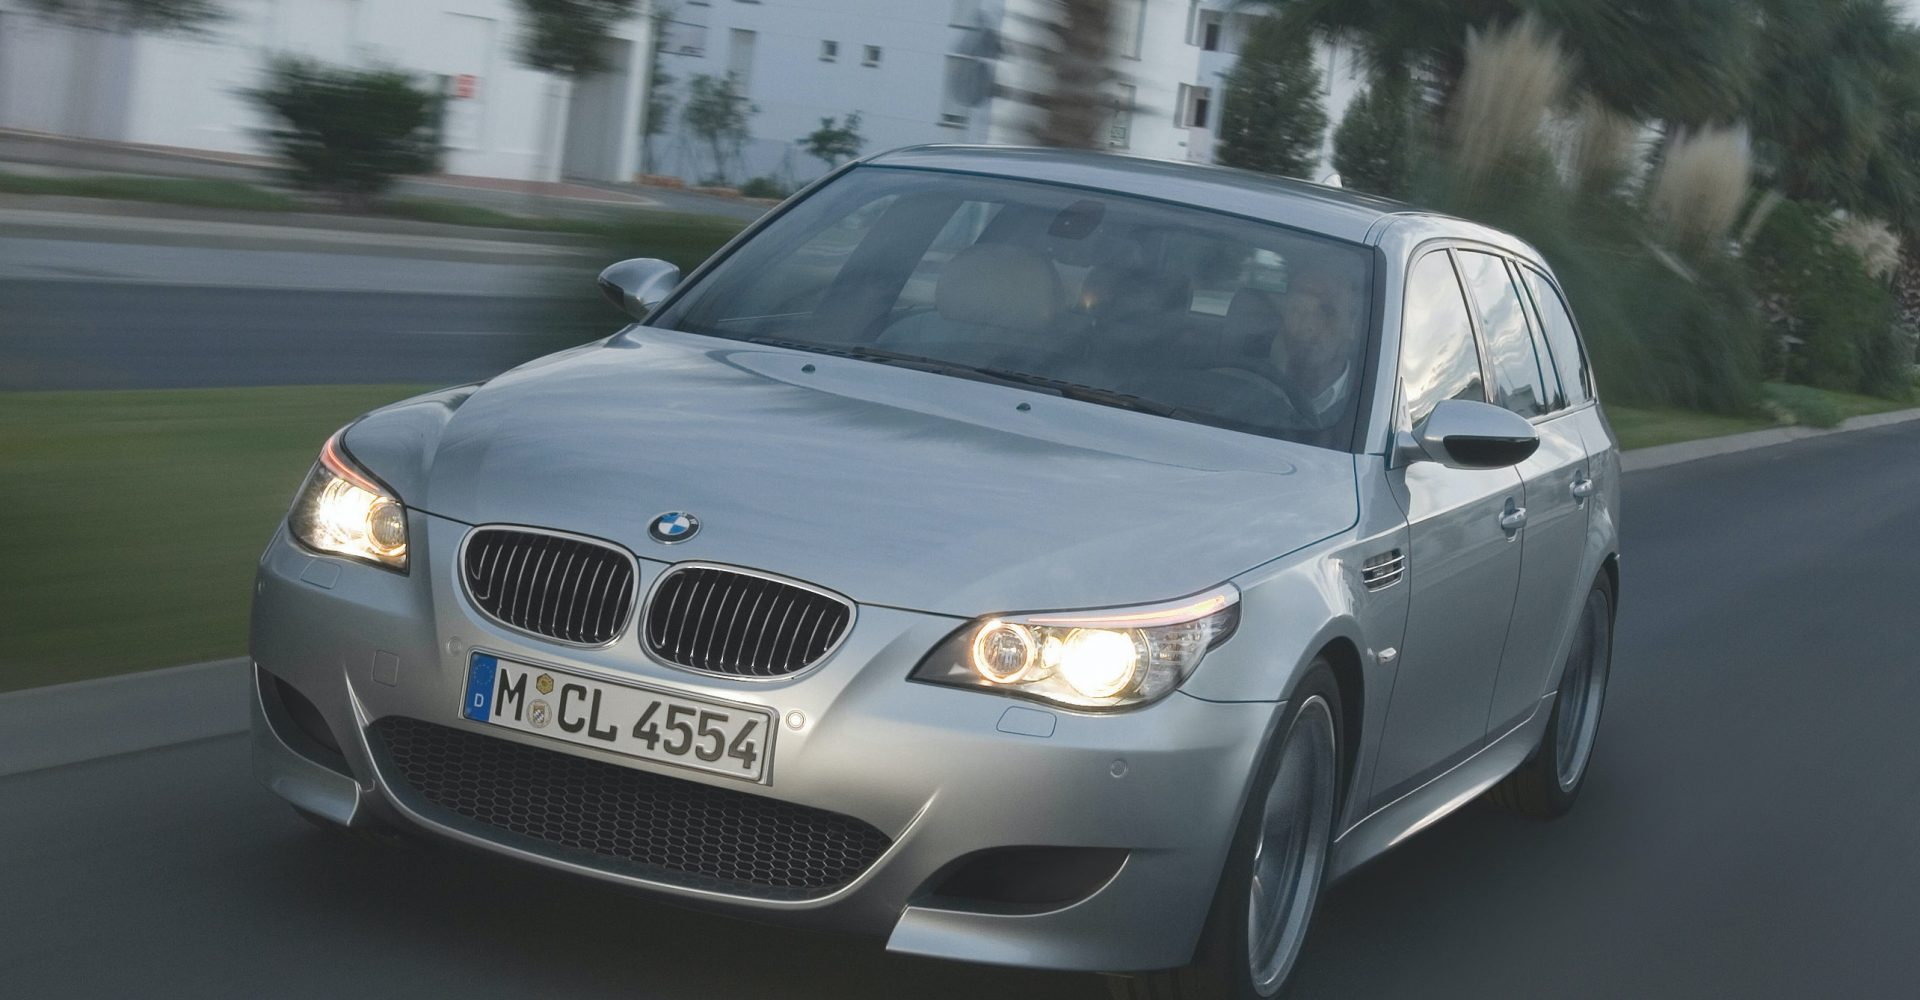 The history of the BMW 5 Series